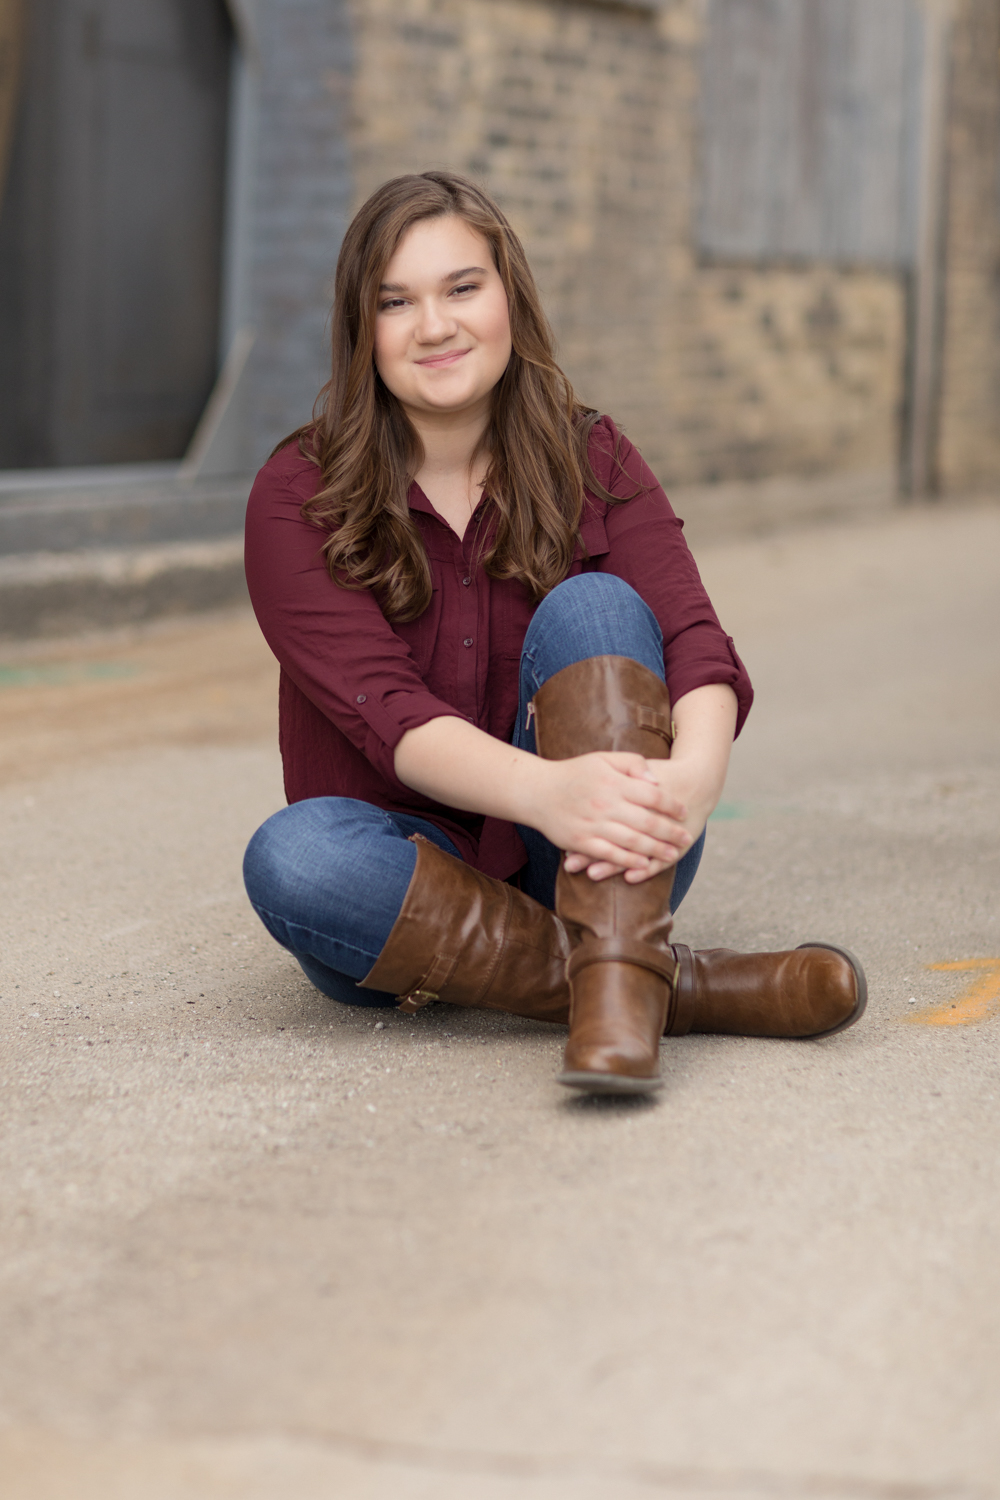 jill_hogan_senior_photography (11 of 17).jpg